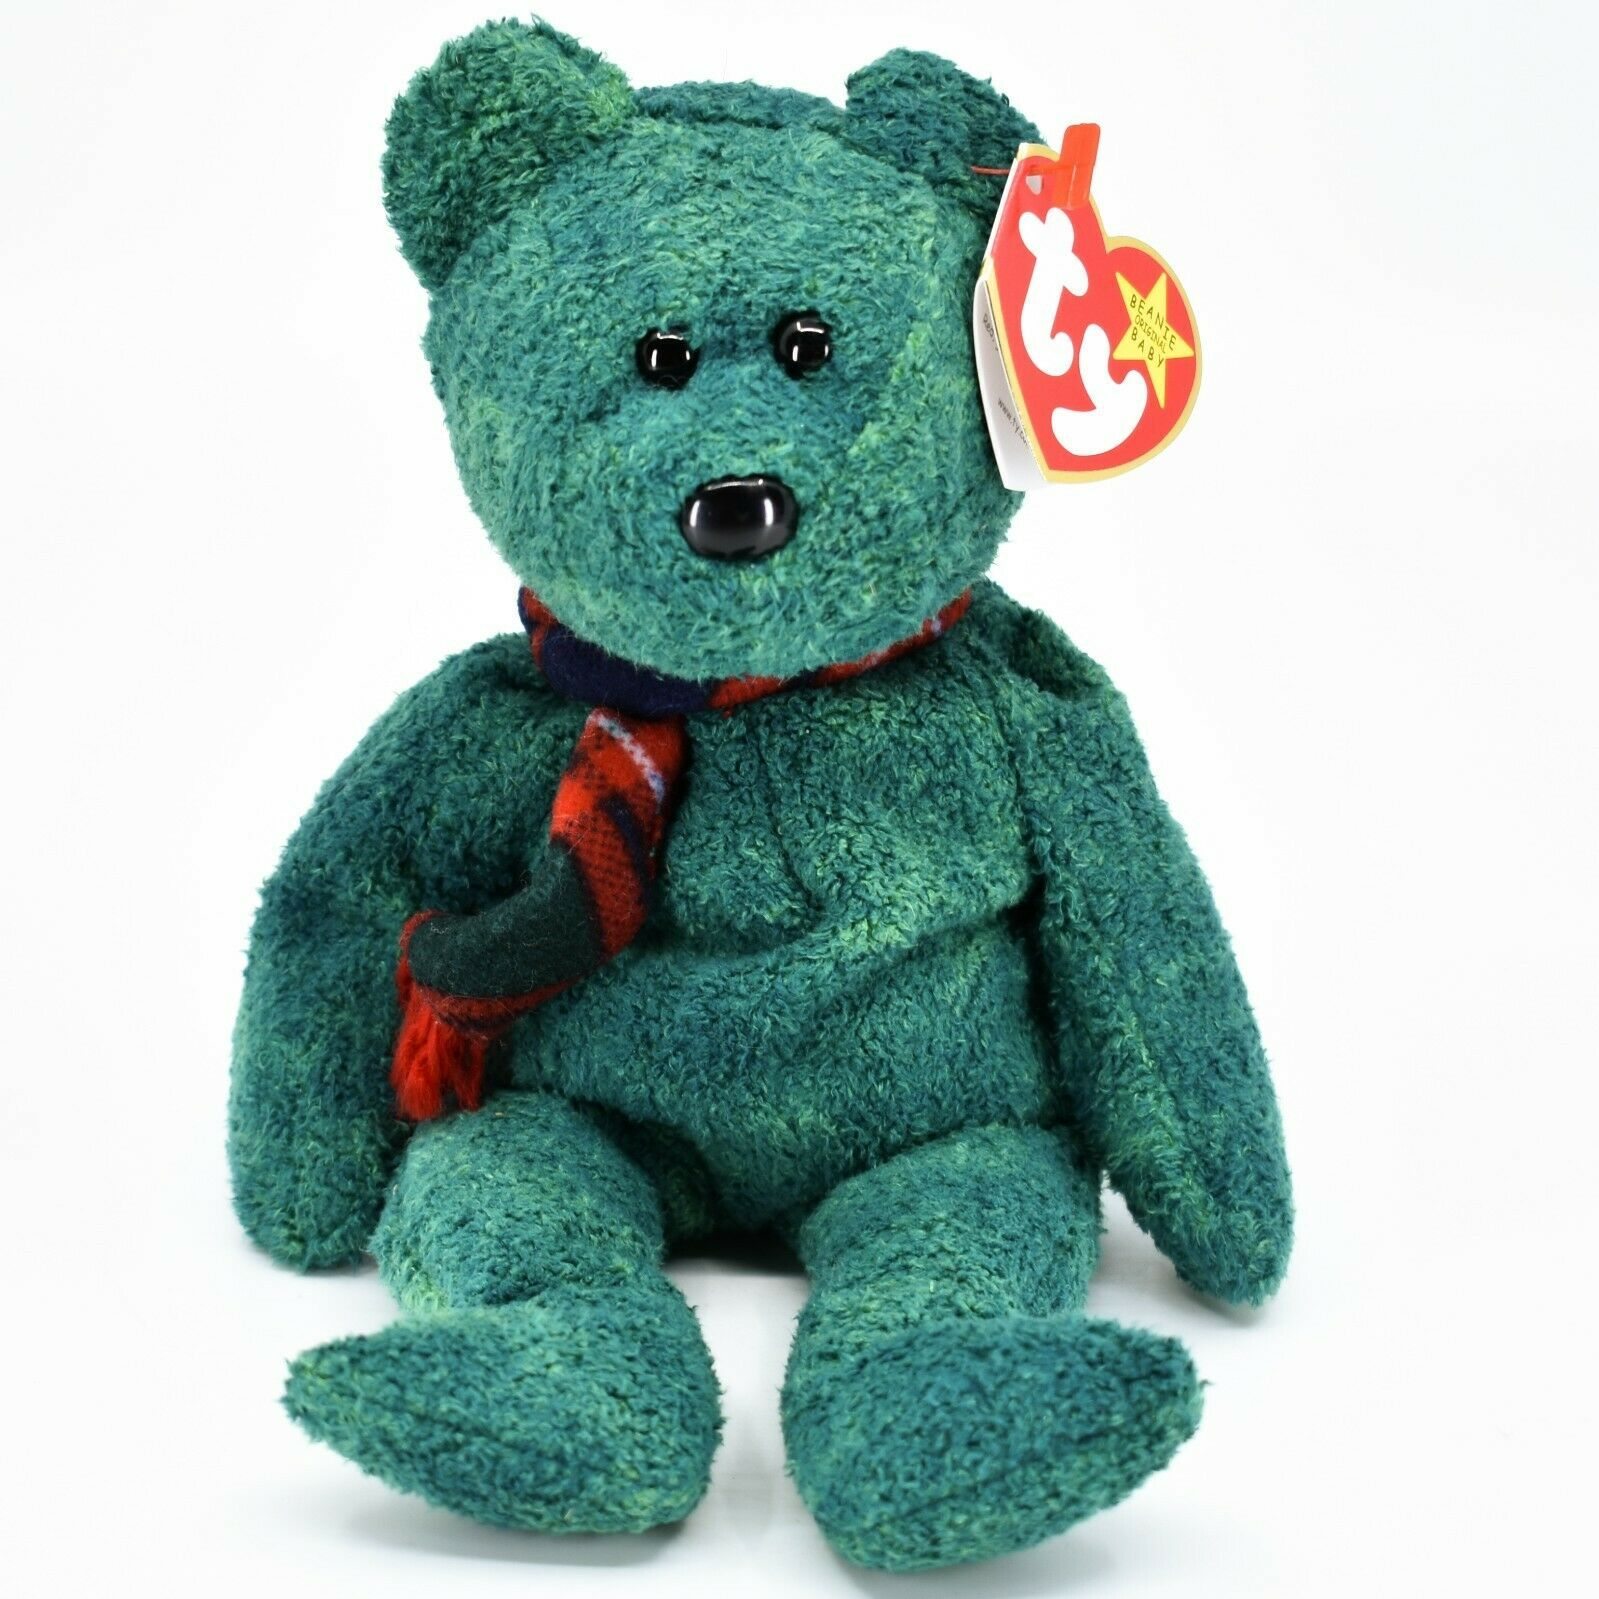 1999 Ty Beanie Baby Original Wallace the Bear Retired Beanbag Plush Toy Doll